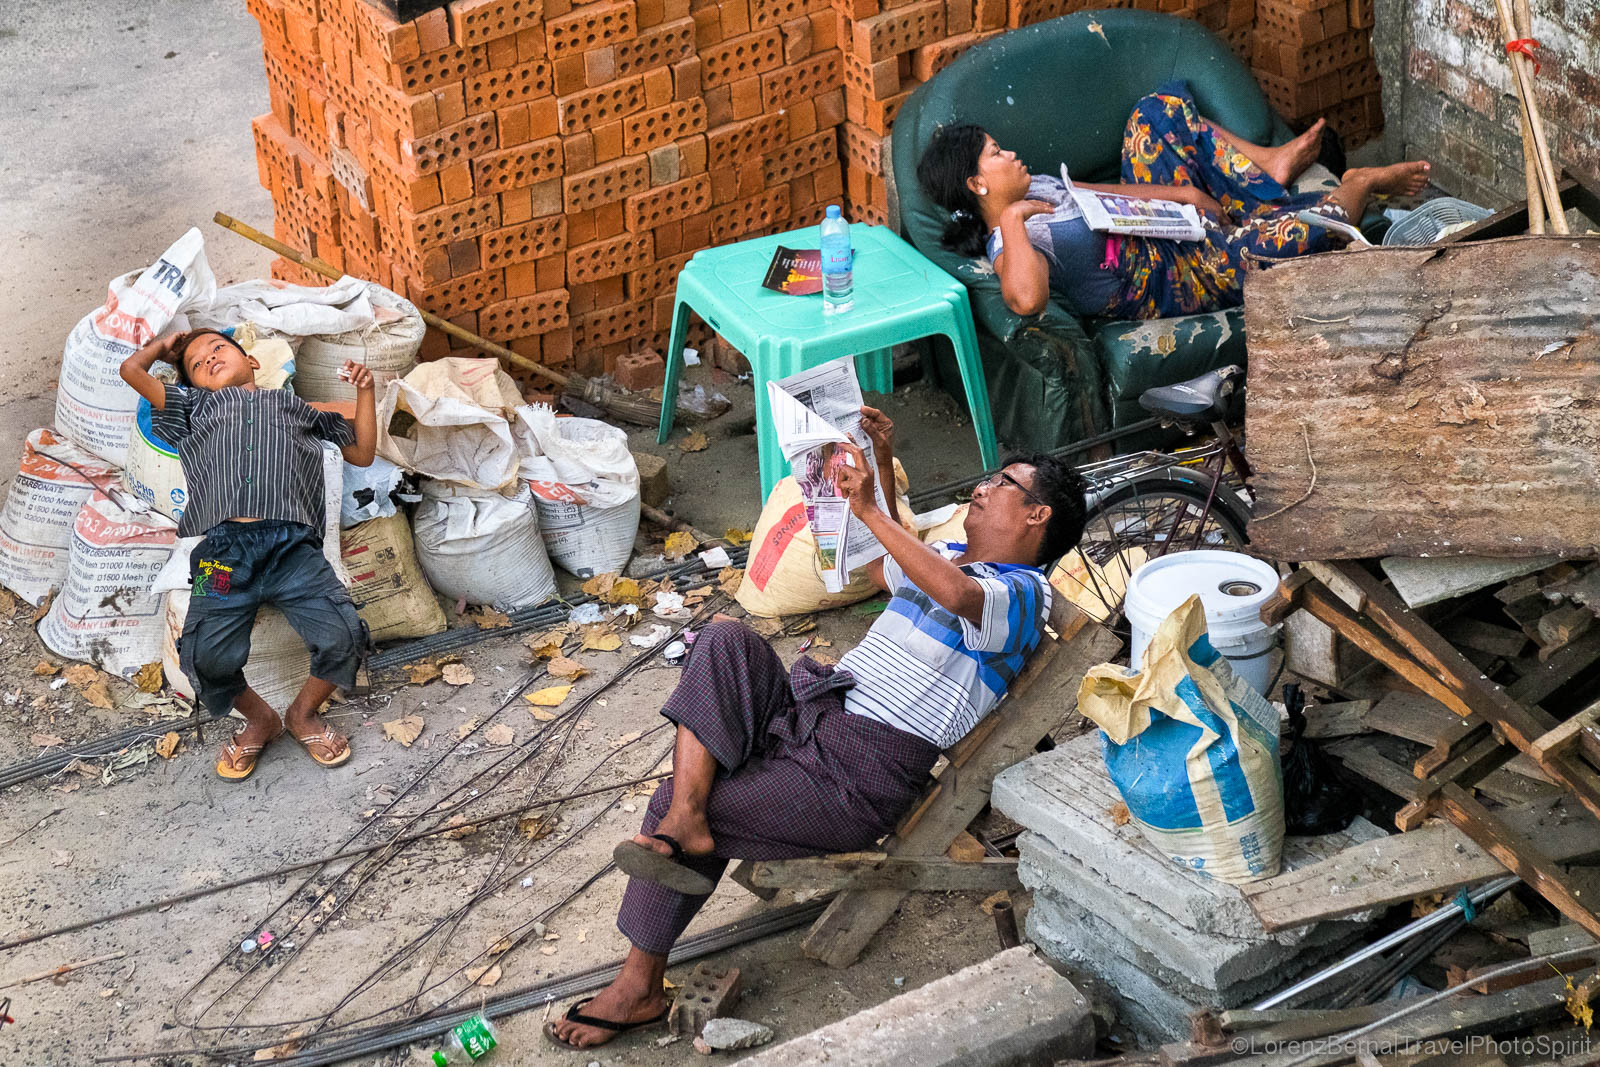 Family resting on Chaos, in Yangon, Myanmar.